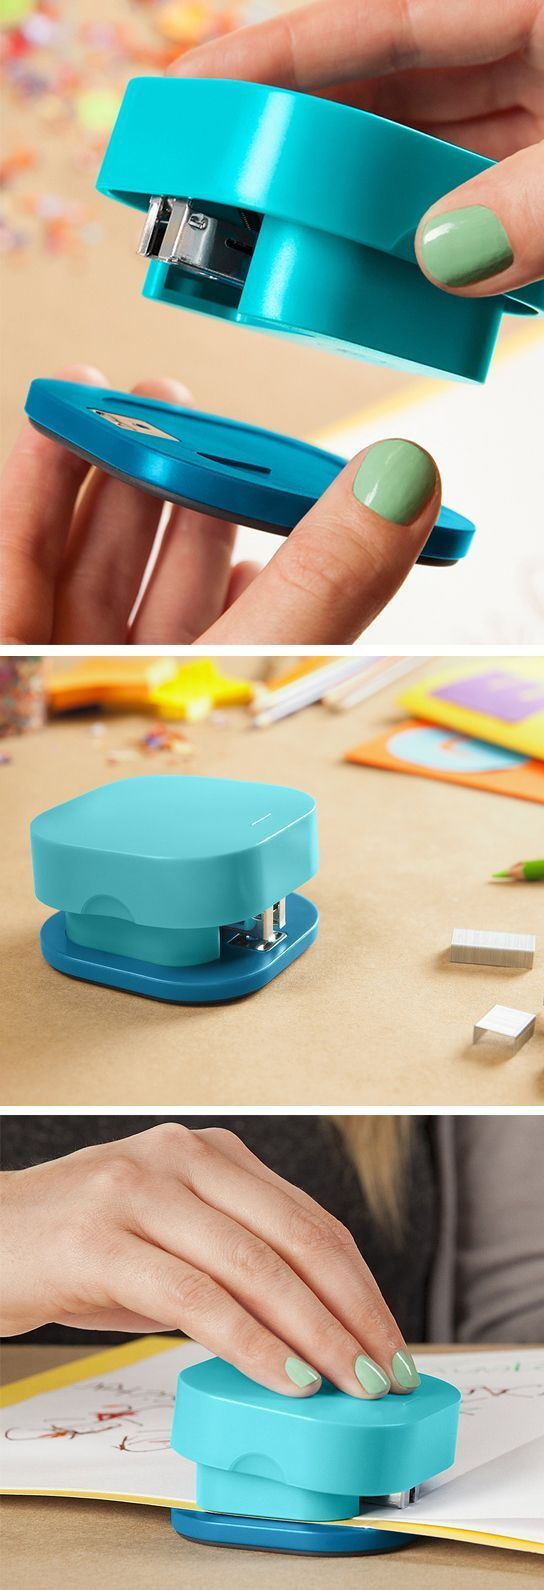 Stapler With A Magnetic, Detachable Base That Lets You Staple Materials Of Any Size. #genius #office #supplies